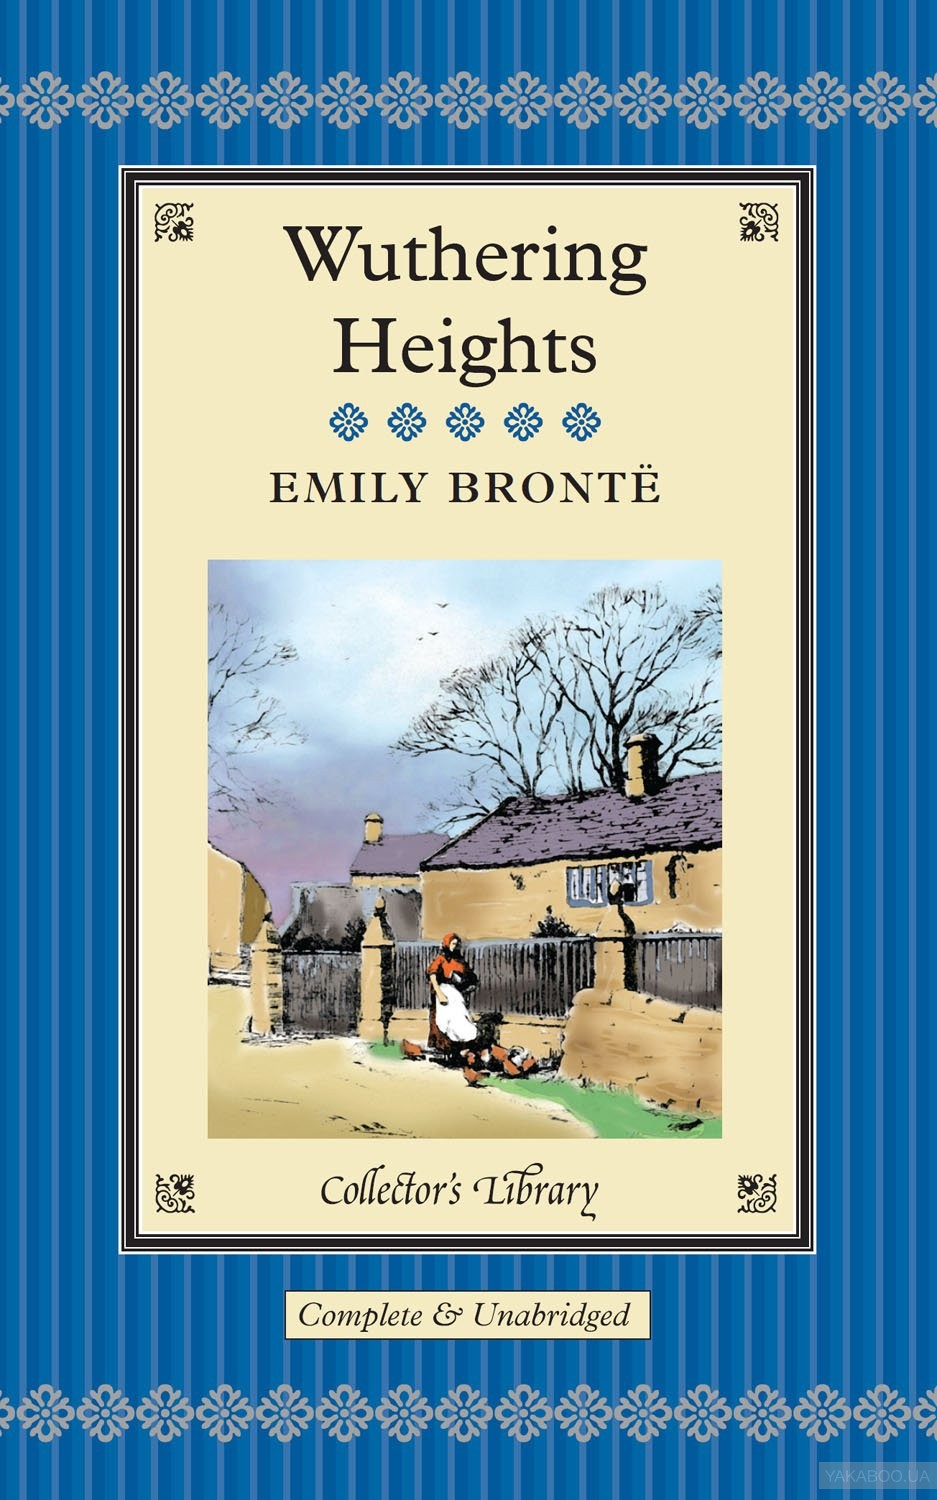 wuthering heights by emily bront Wuthering heights, emily brontë's only novel, was published in 1847 under the pseudonym ellis bell it was written between october 1845 and june 1846.